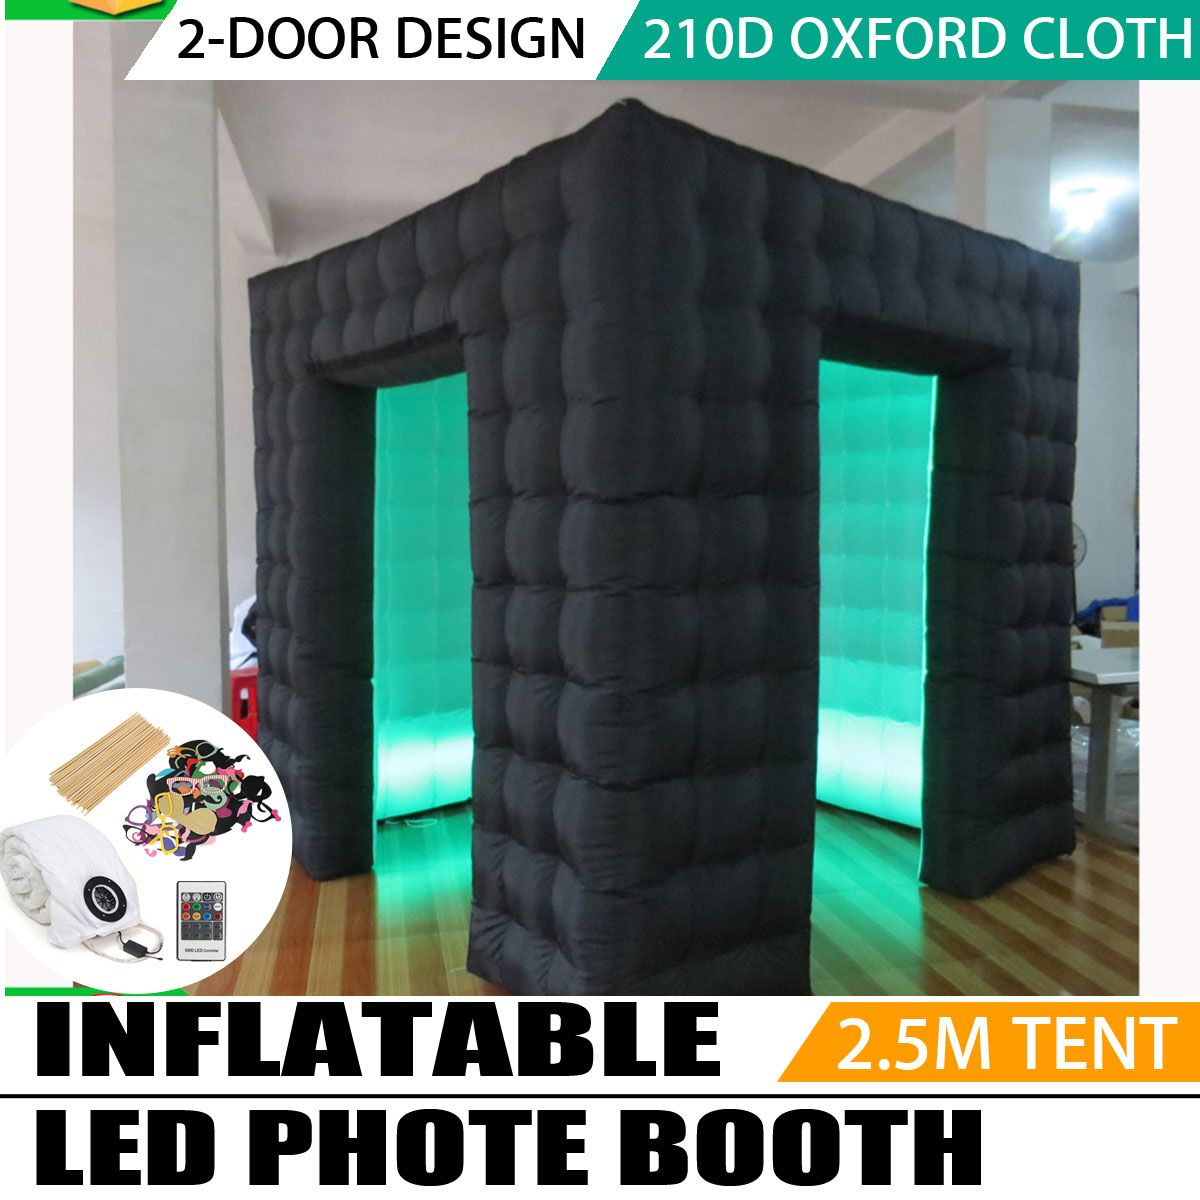 2.5*2.5*2.5M Portable Inflatable Photo Cabin Inflatable Cube Tent Led Inflatable Photo Booth for Wedding Party